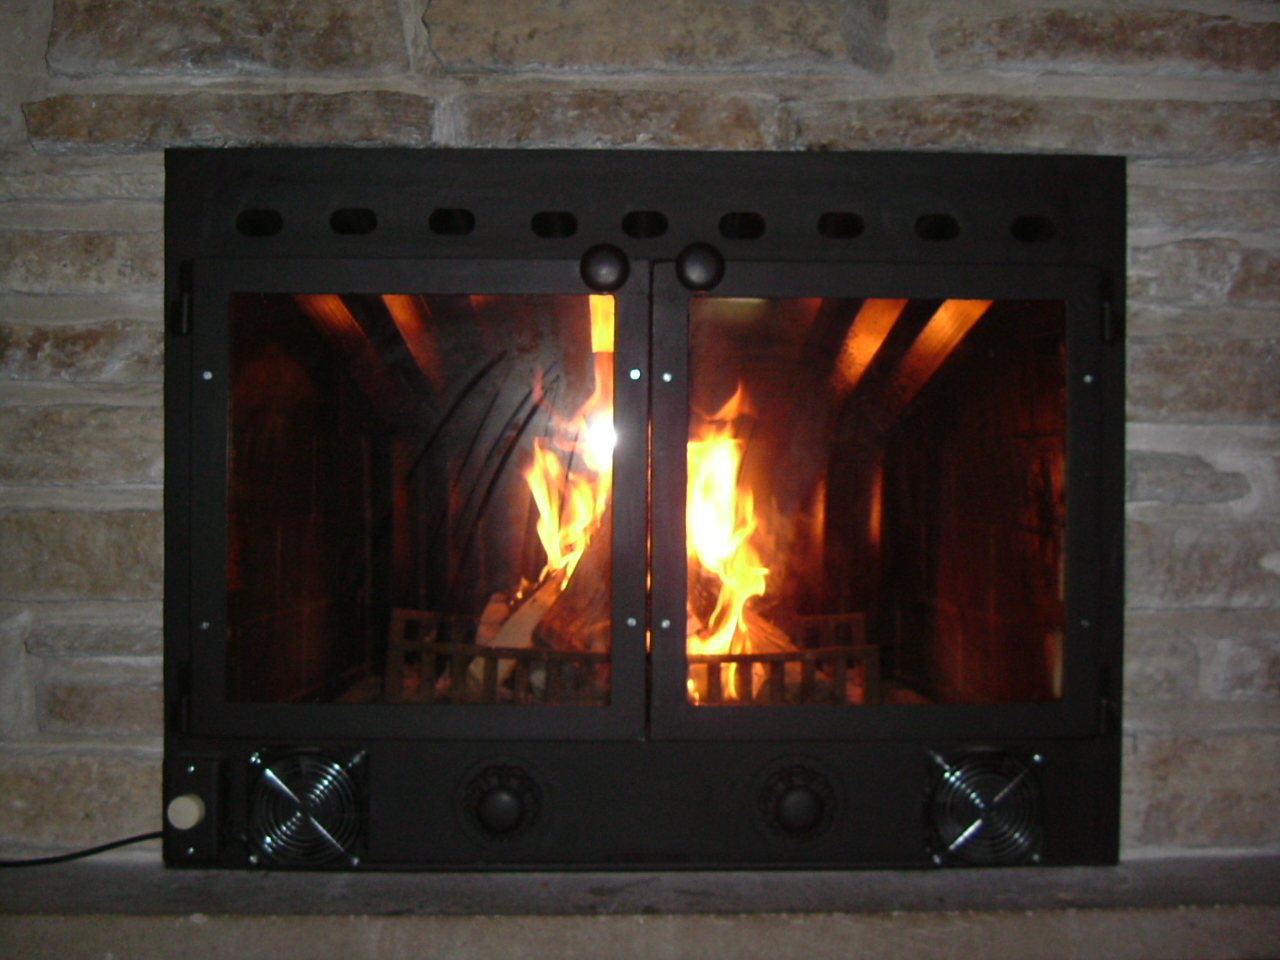 Close the damper on fire insert when not in use.